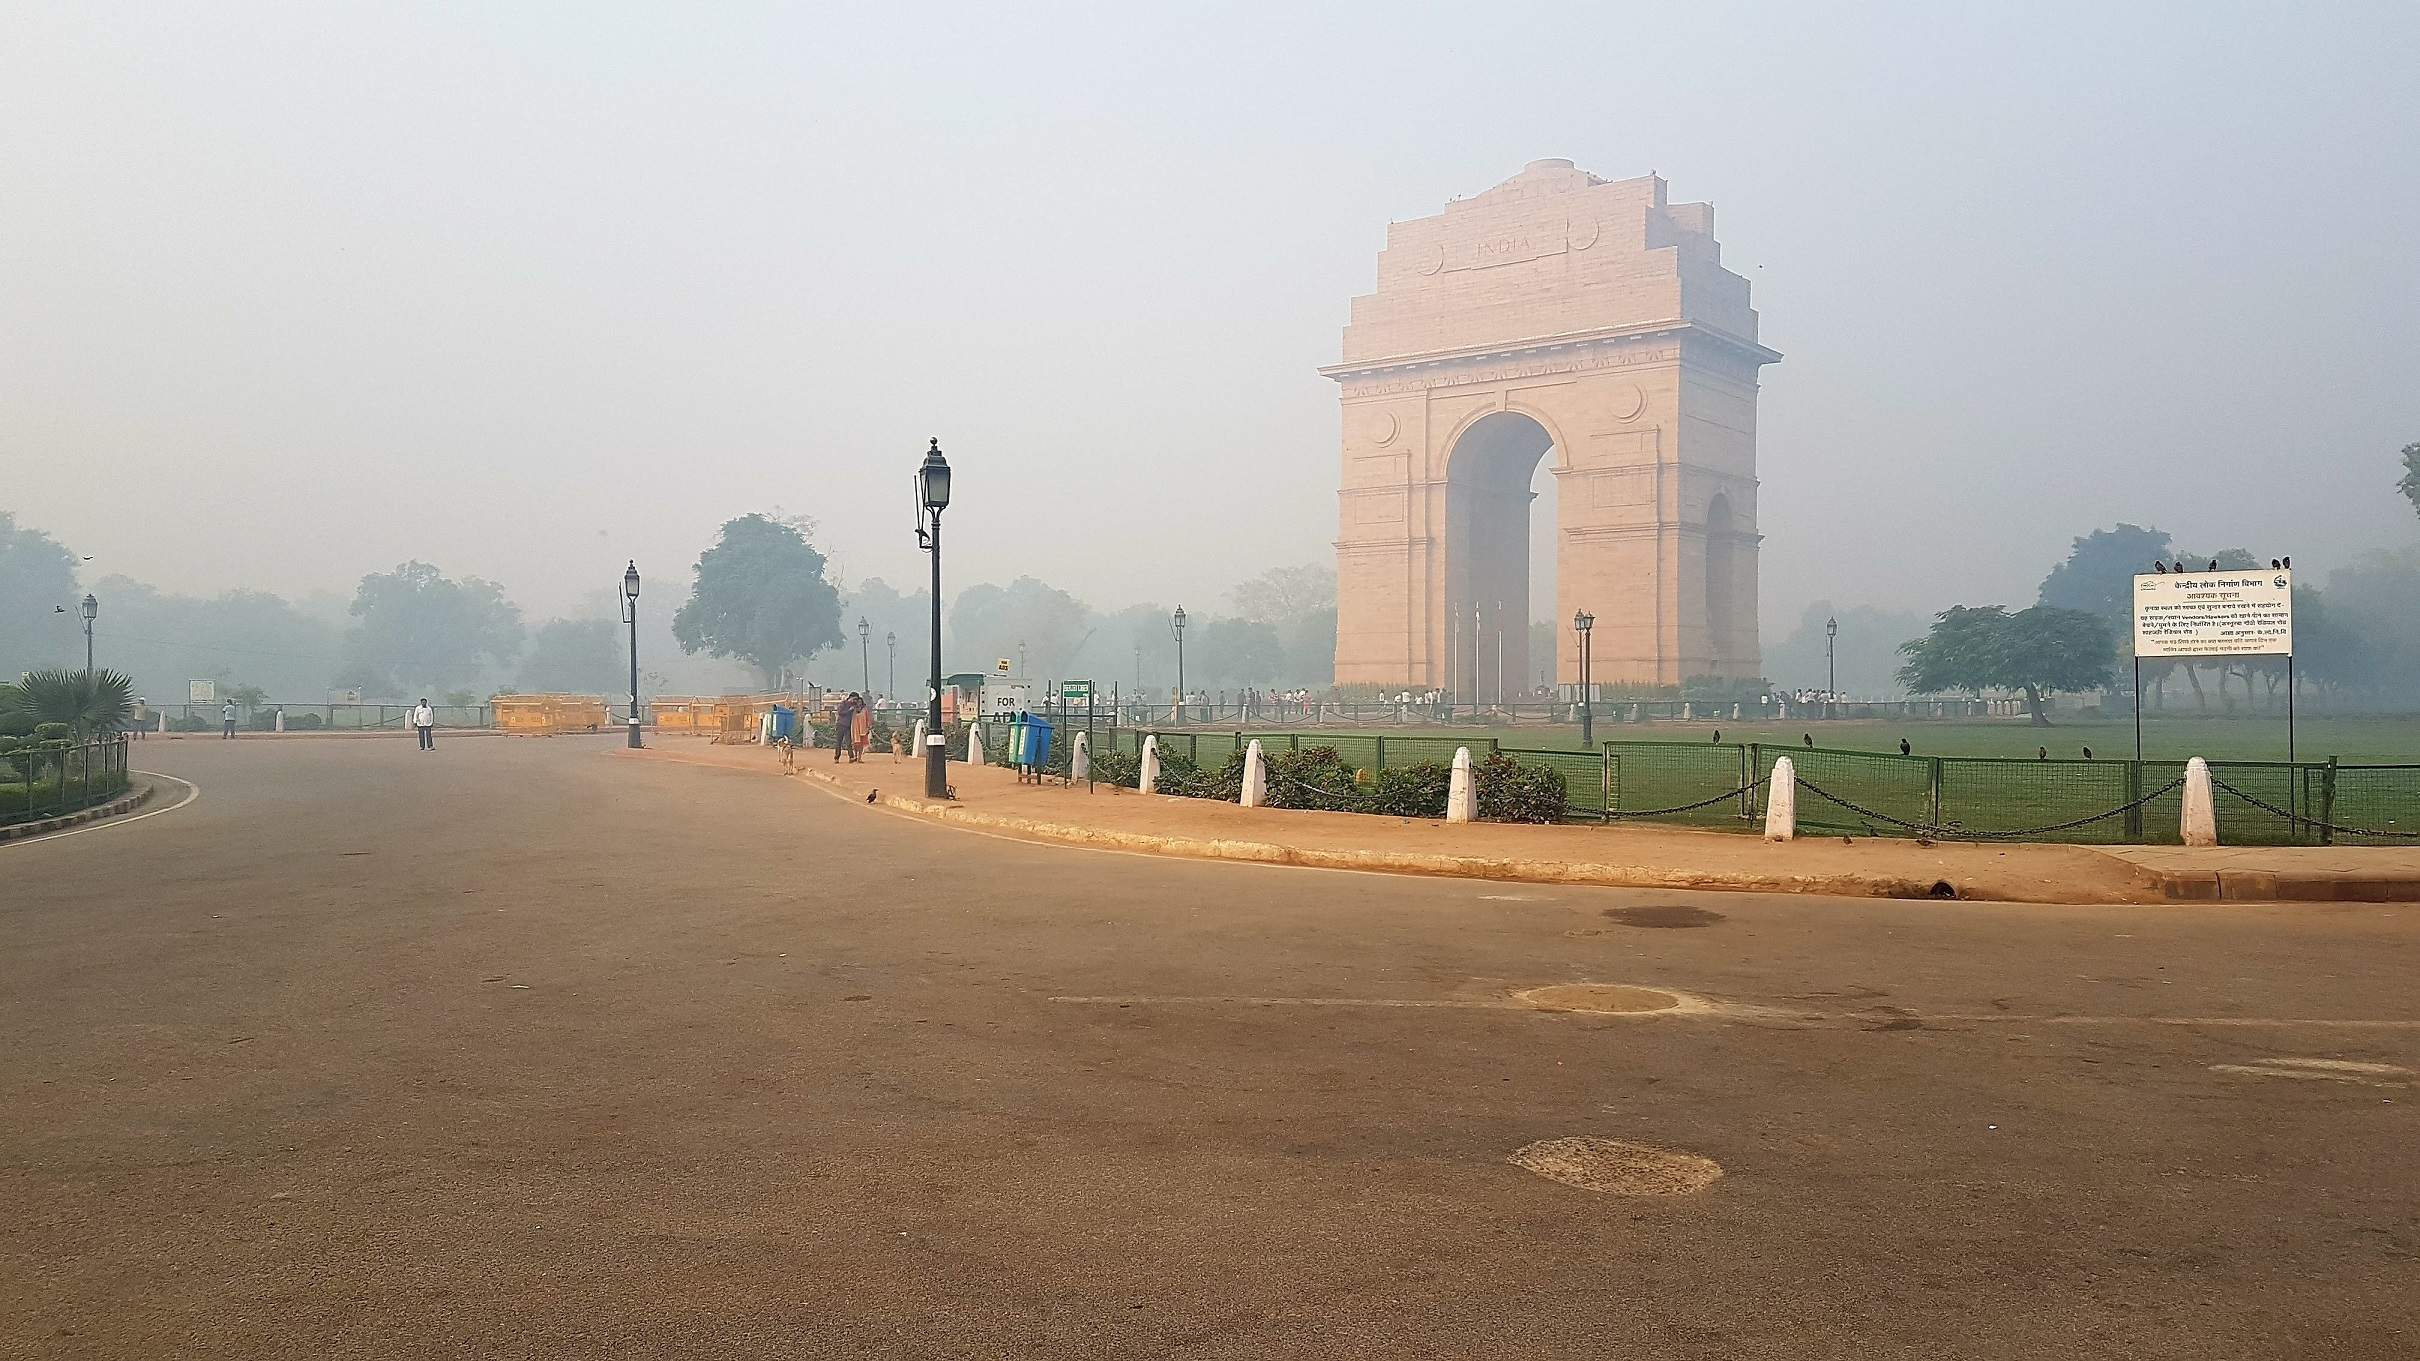 New Delhi's pollution problem is so bad an airline cancelled flights to the city